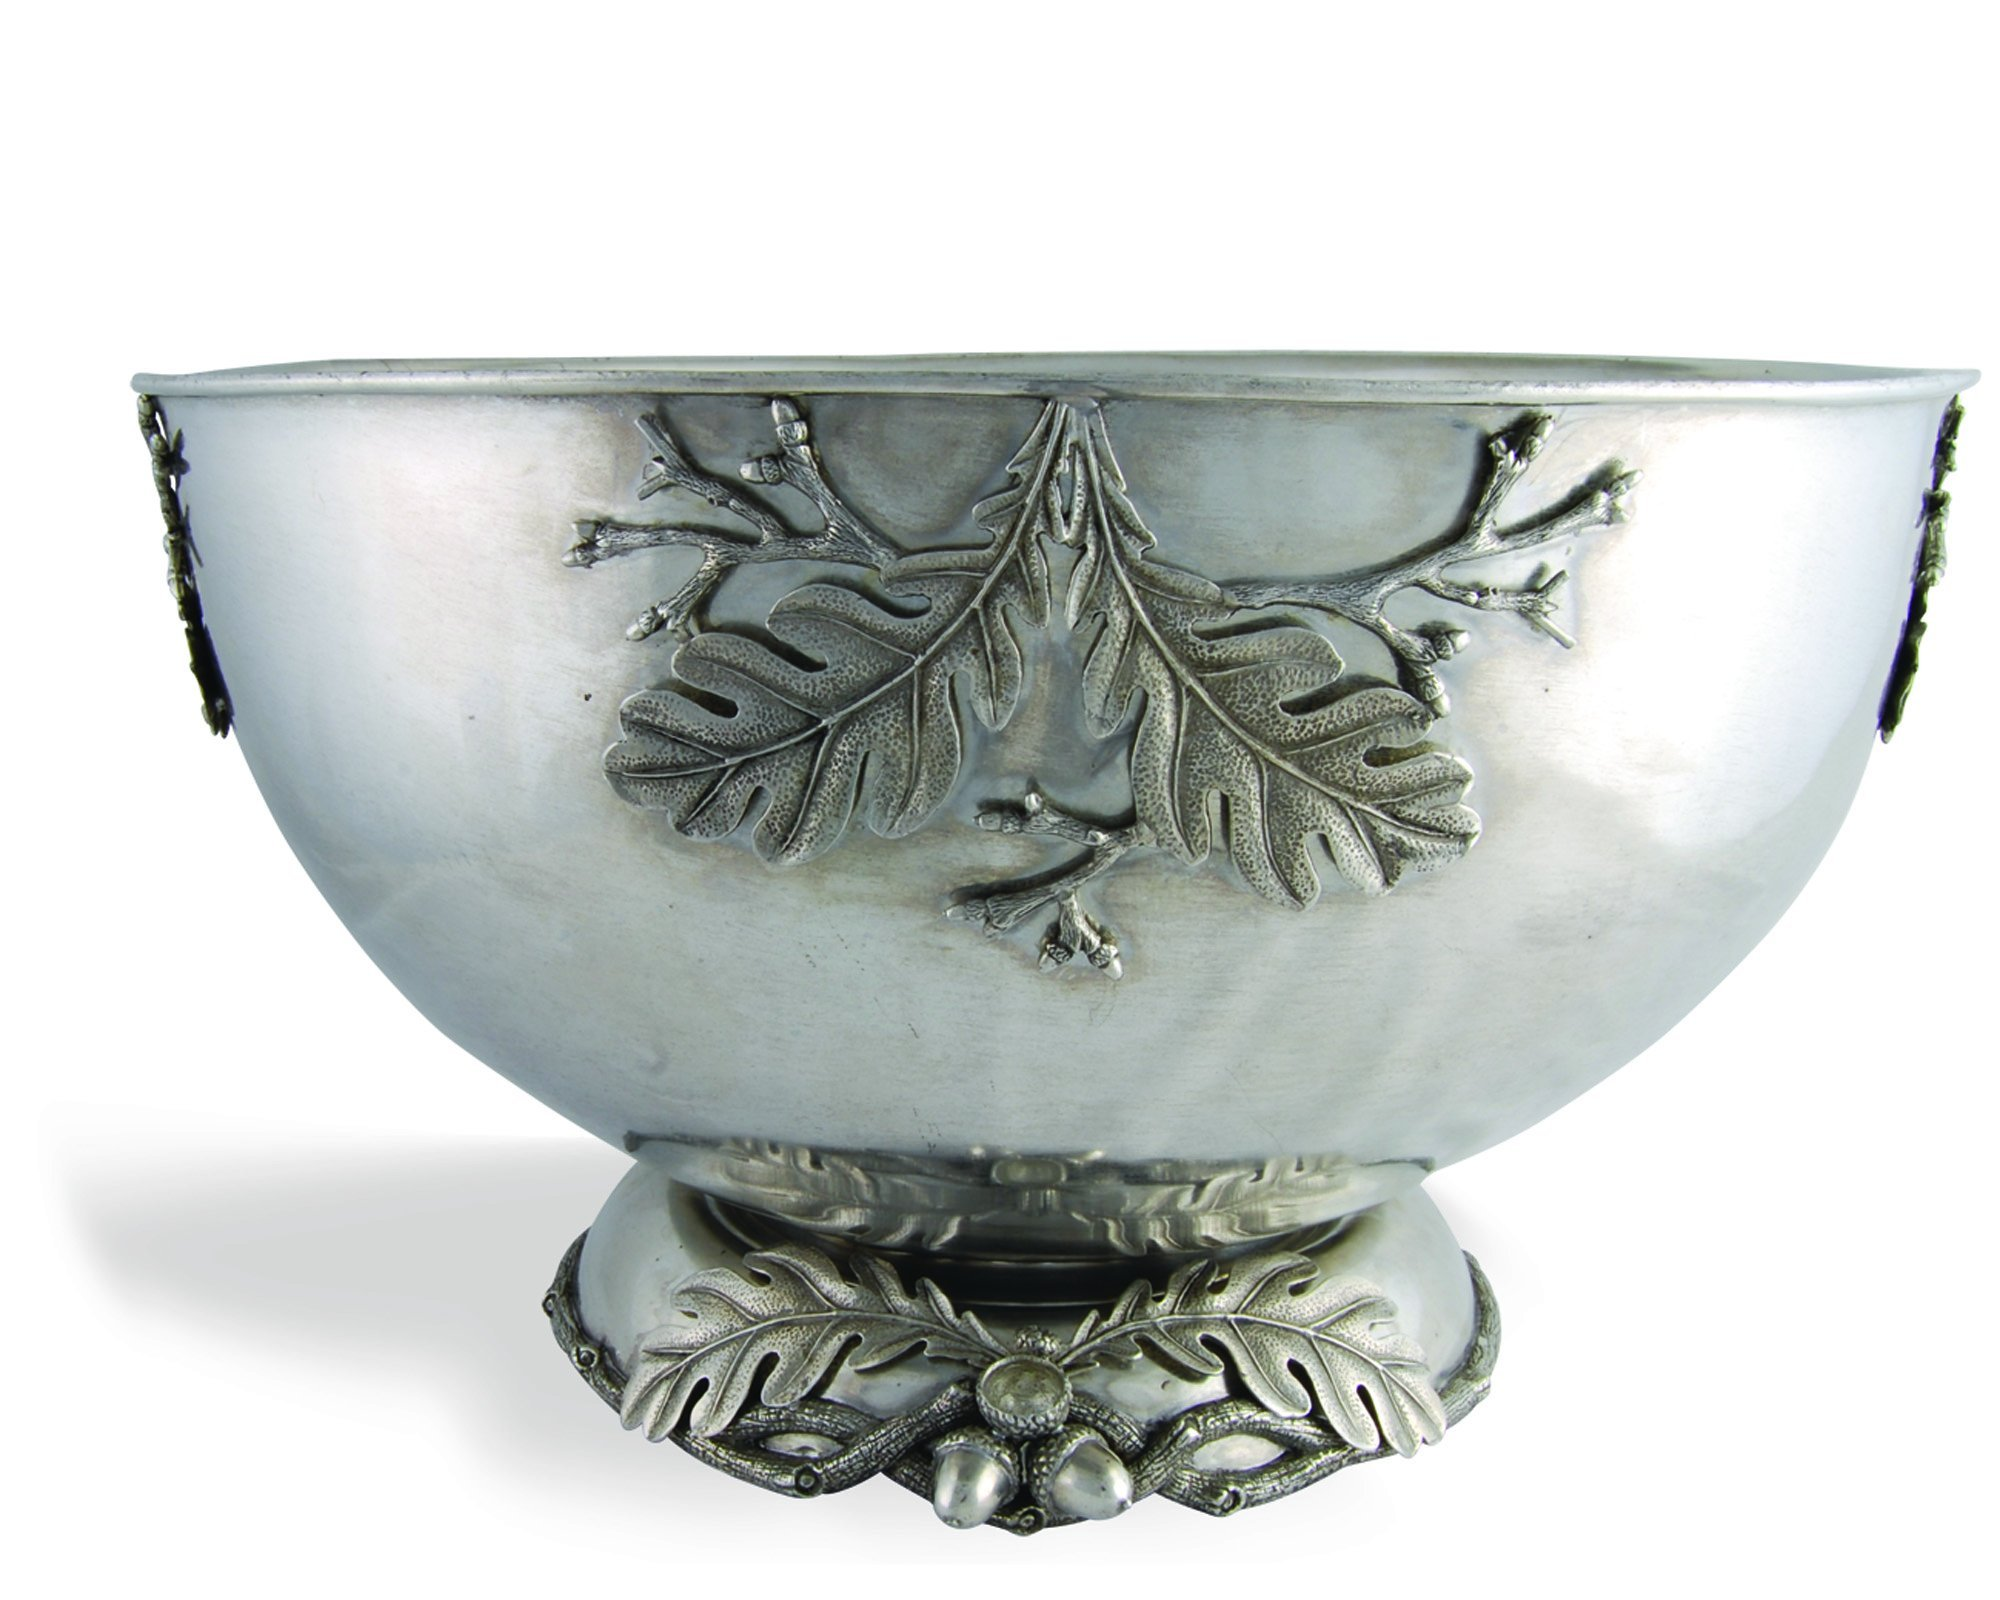 Vagabond House Pewter Charter Oak Ice Tub Punch Bowl 18.5'' Wide x 11'' Tall